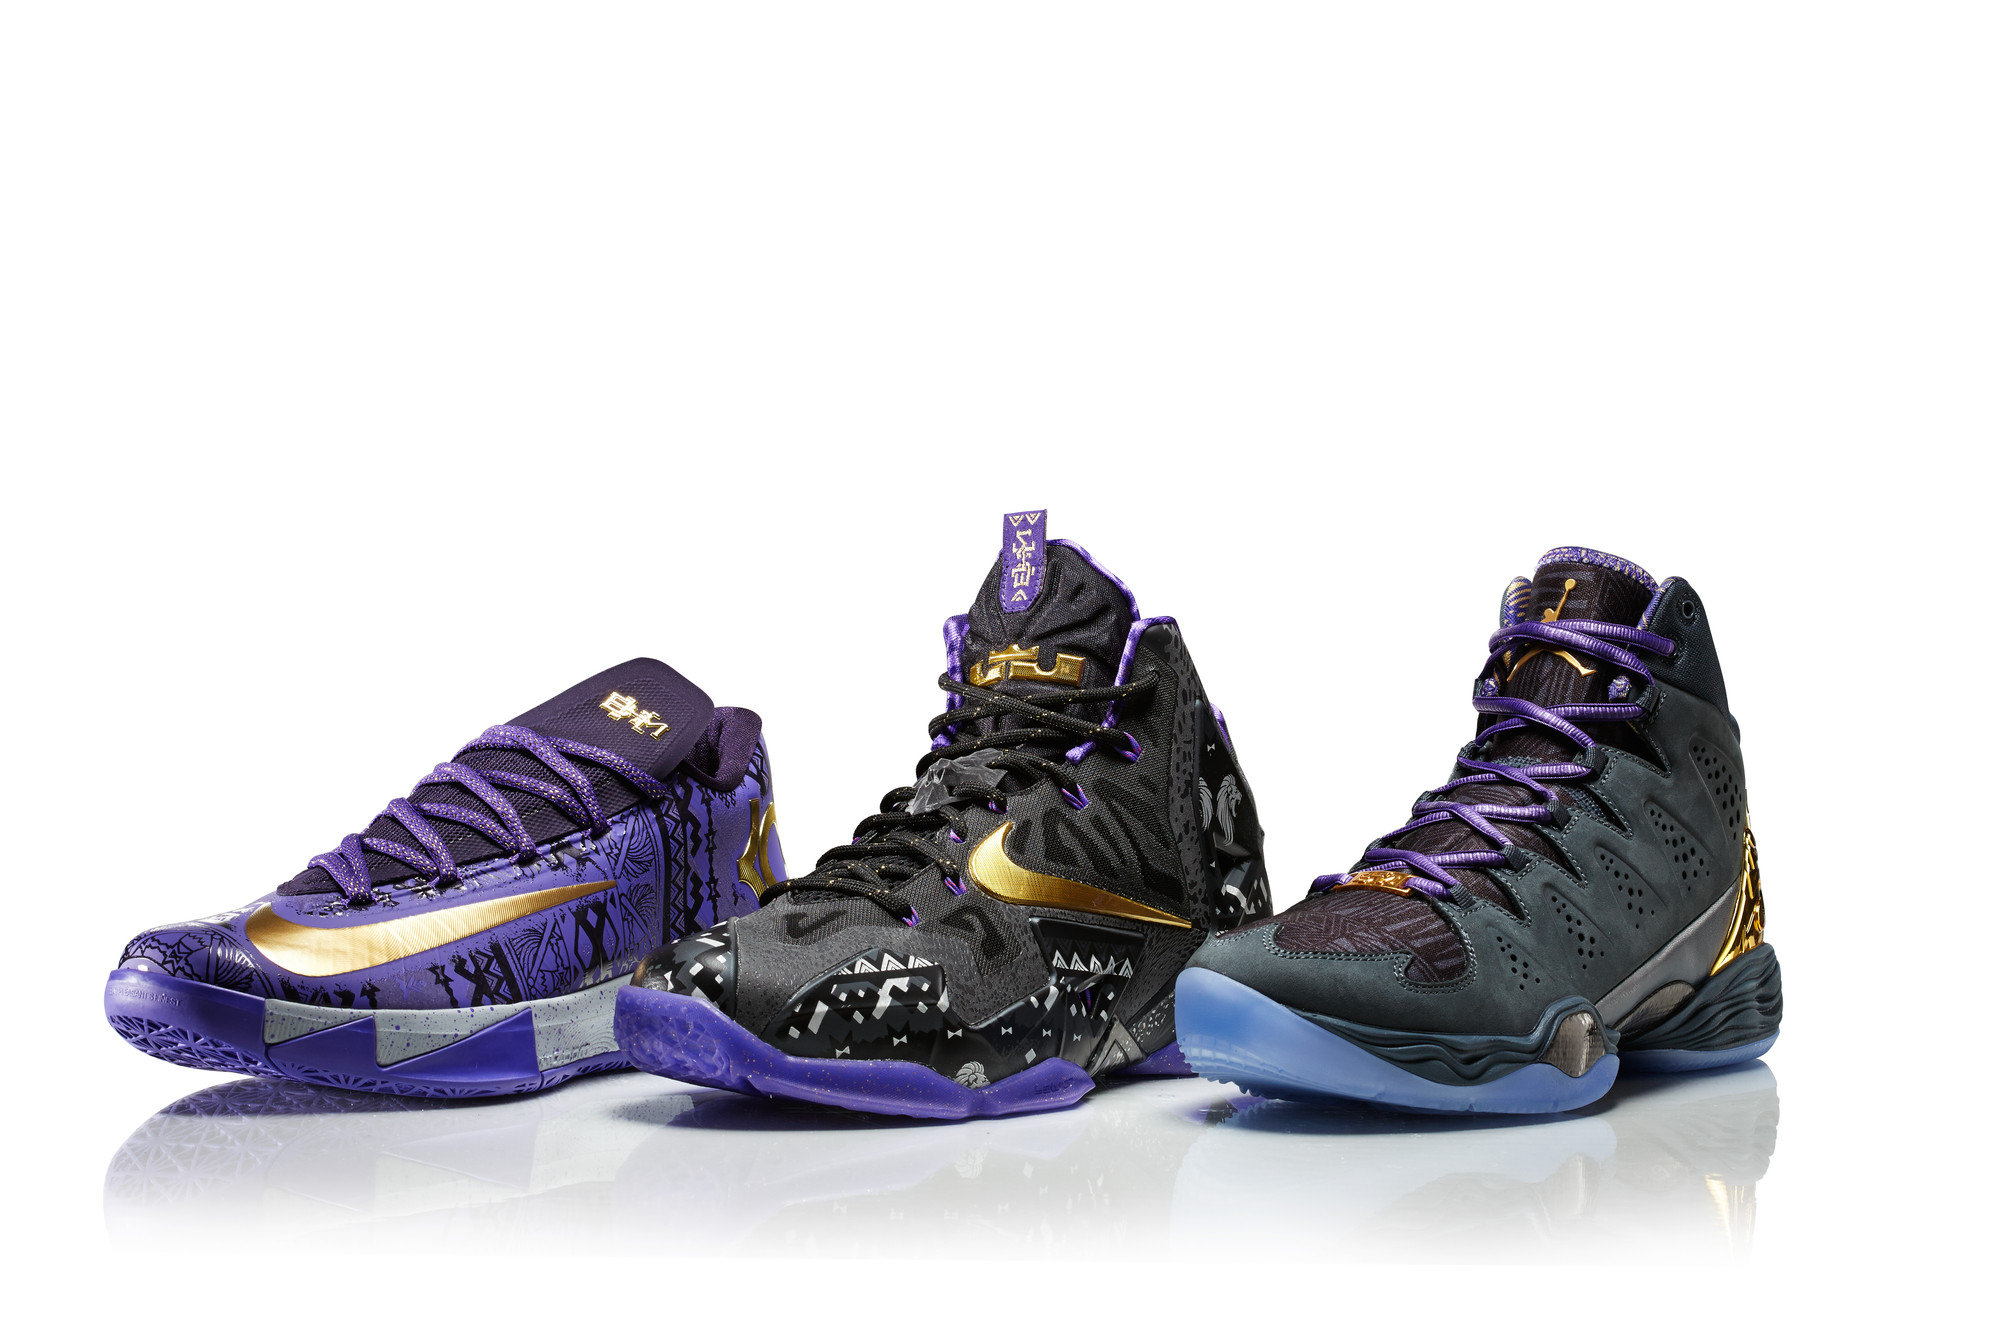 NIKE_SP14_BHM_COLLECTION_0018_original